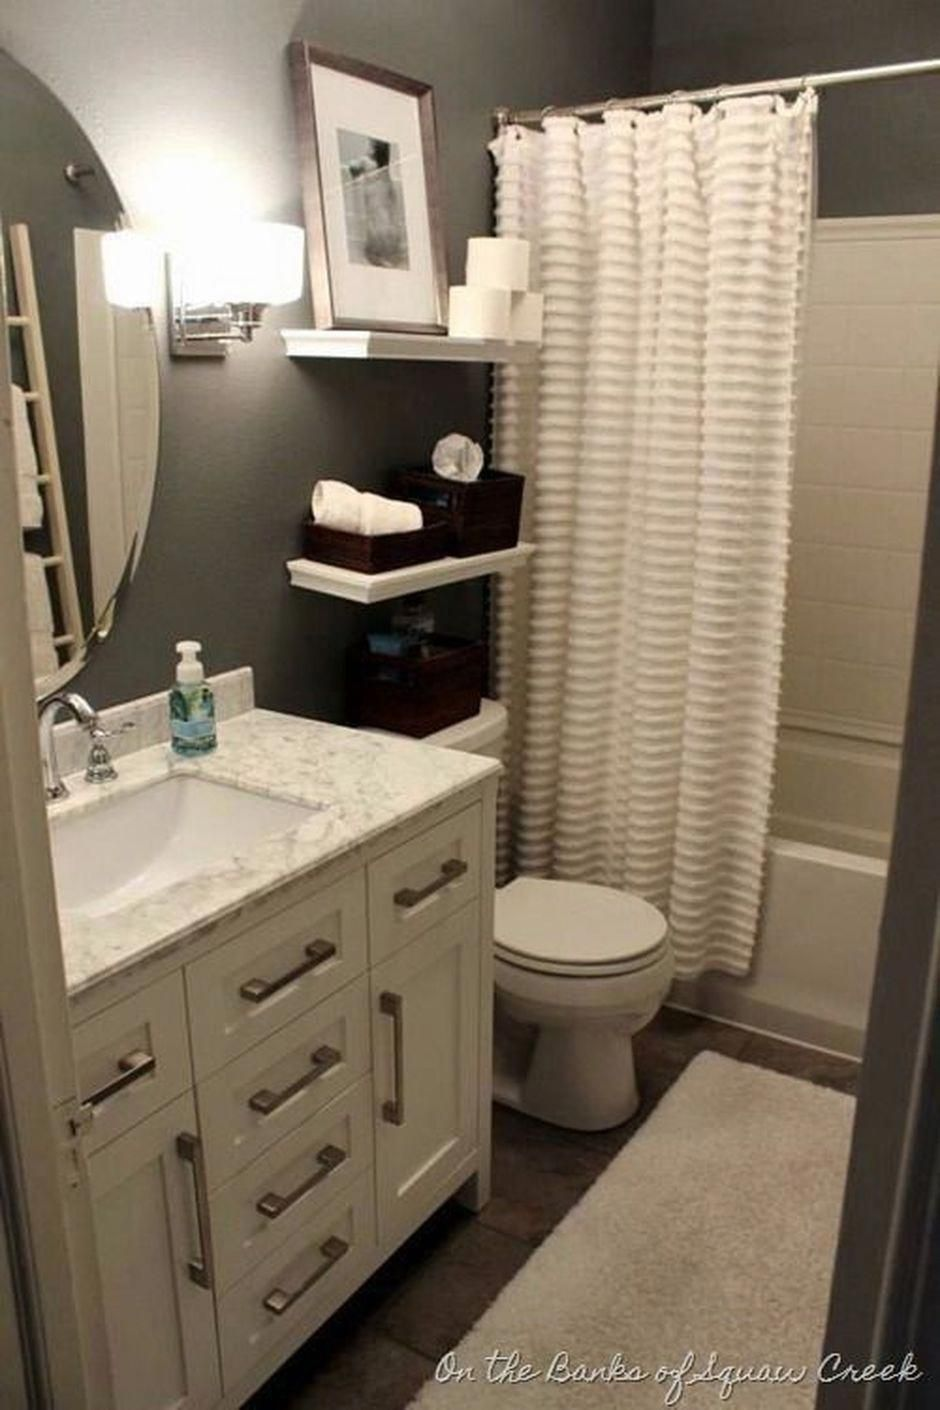 Advice Techniques Furthermore Manual With Regards To Getting The Best Outcome And Also Making The Maxi In 2020 Gray Bathroom Decor Small Full Bathroom Small Bathroom